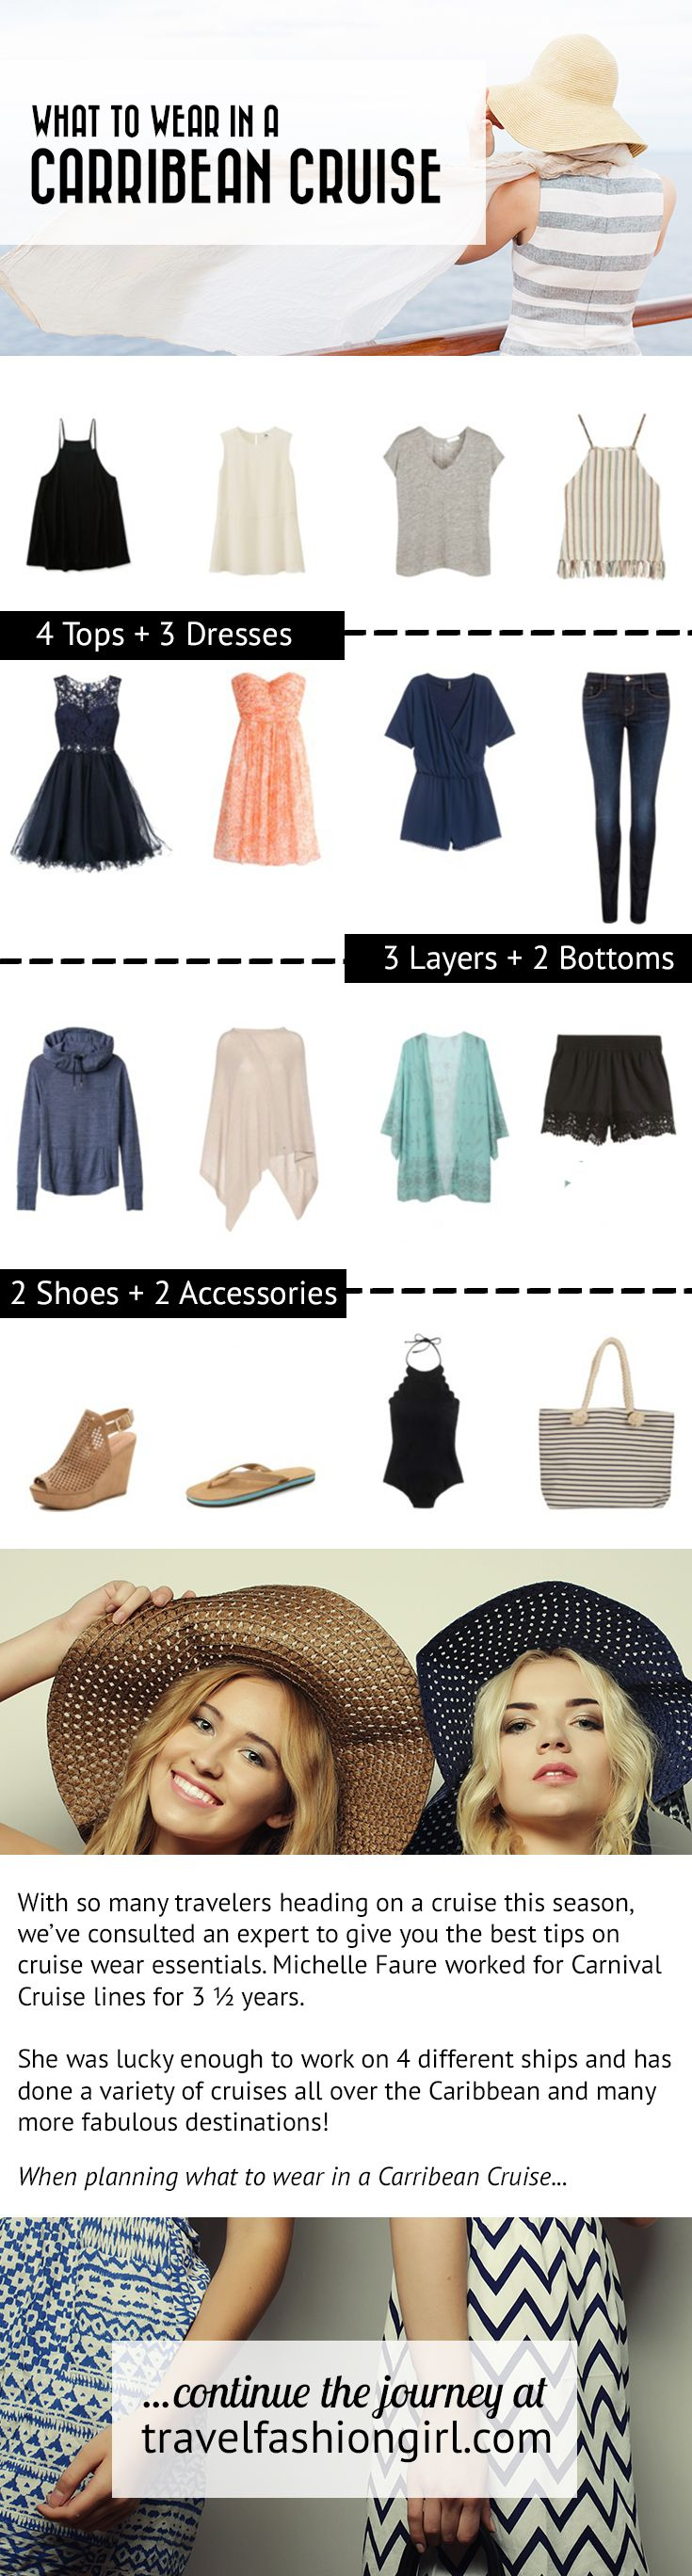 With so many travelers heading on a cruise this season, we've consulted an expert to give you the best tips on cruise wear essentials. Follow these expert tips! http://travelfashiongirl.com/caribbean-cruise-wear-essentials-cruise-dresses-and-more/ via @travlfashngirl #packing #list #travel